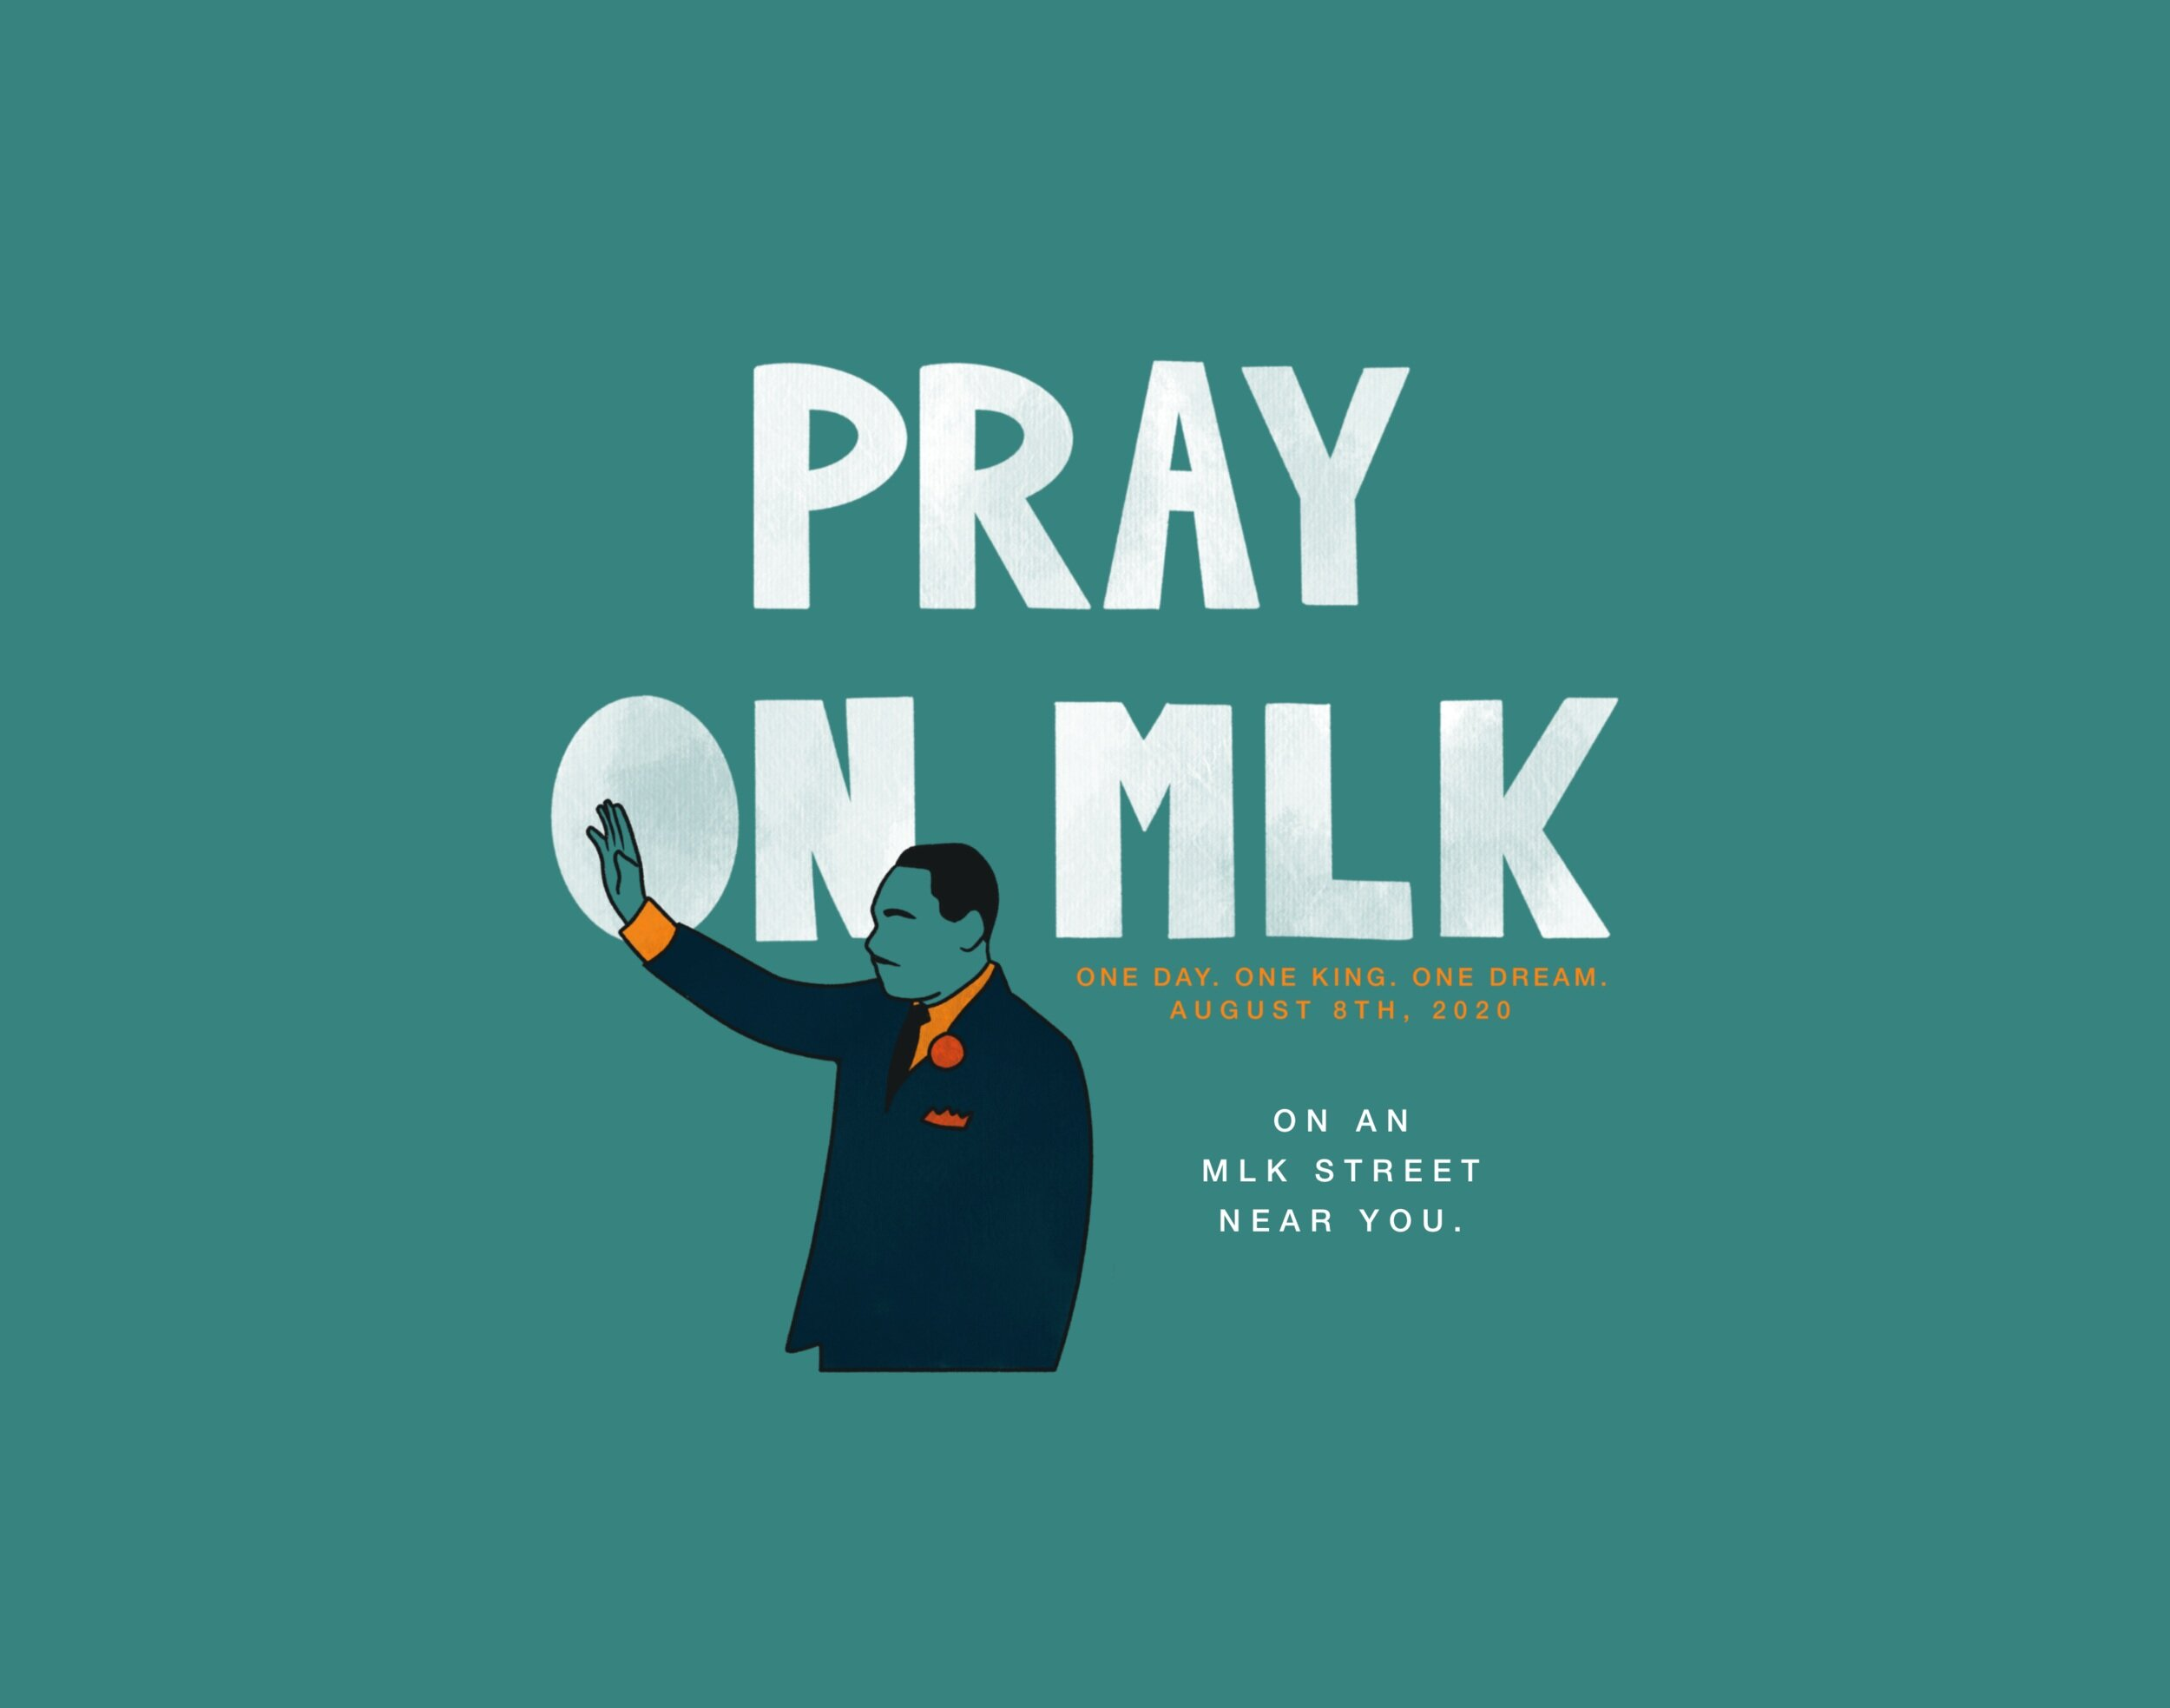 'Pray on MLK' is a Movement, Not an Event